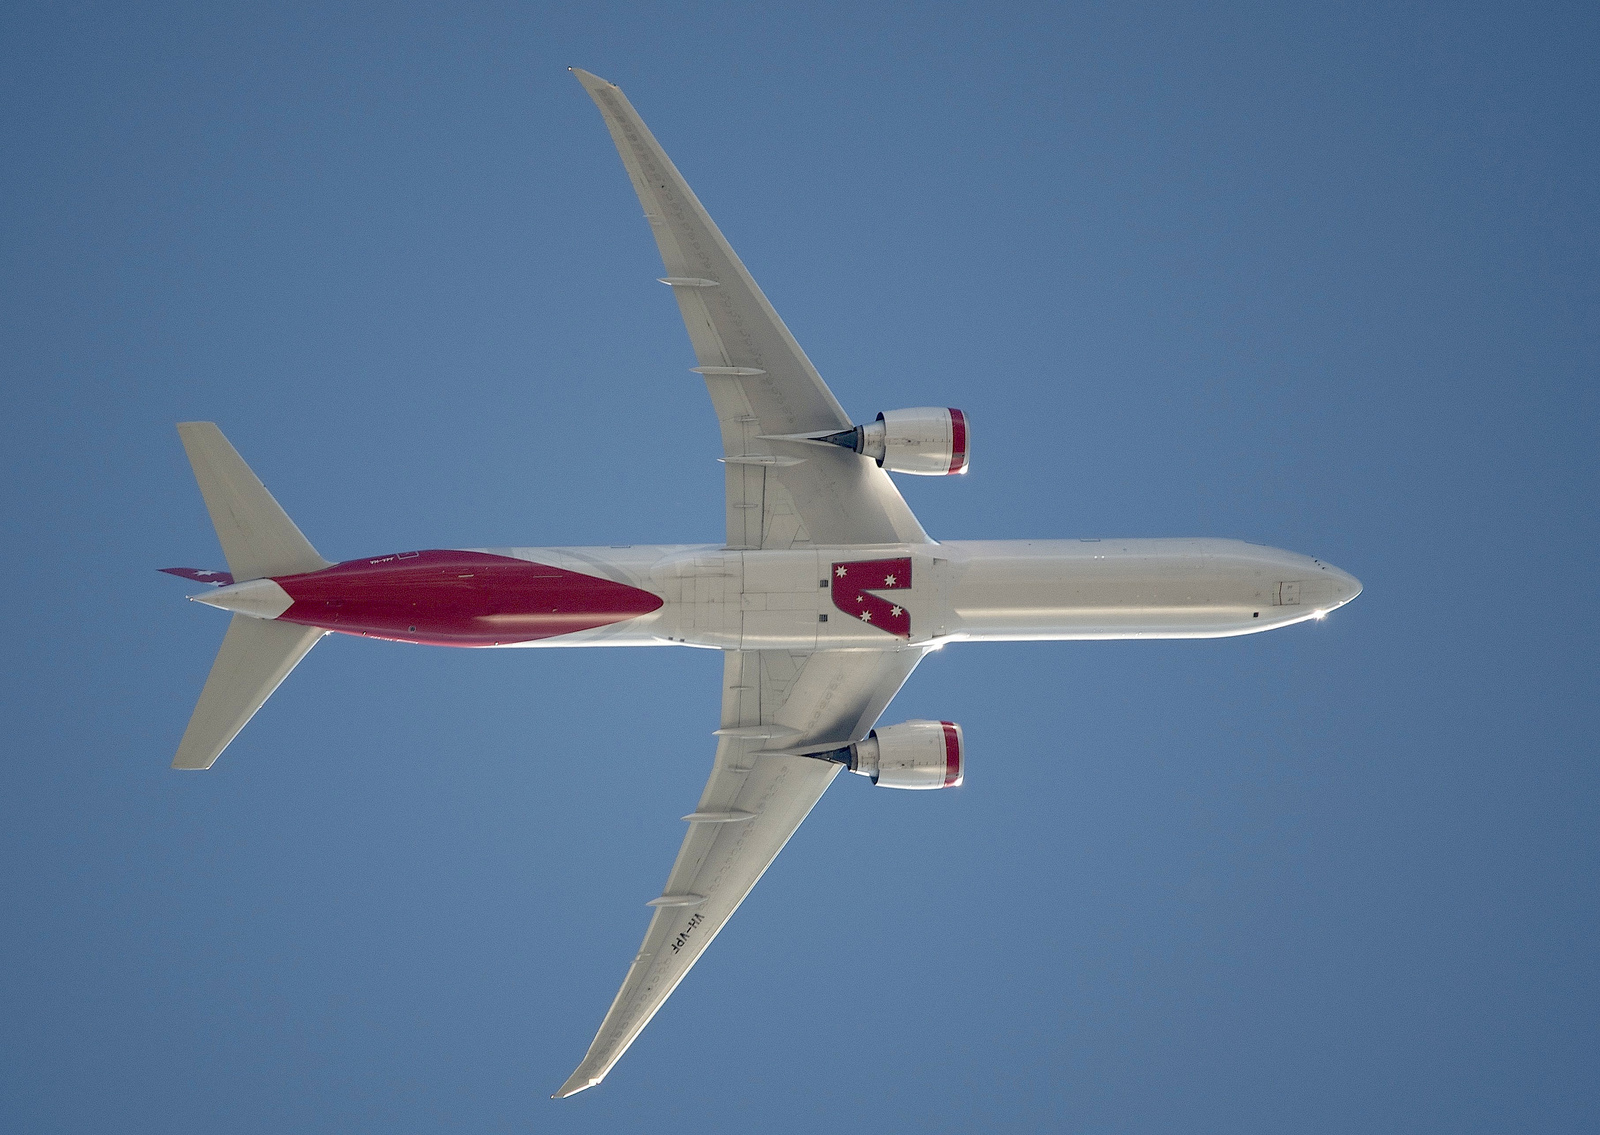 V Australia 777. Image: Gavin (777 freak) on flickr